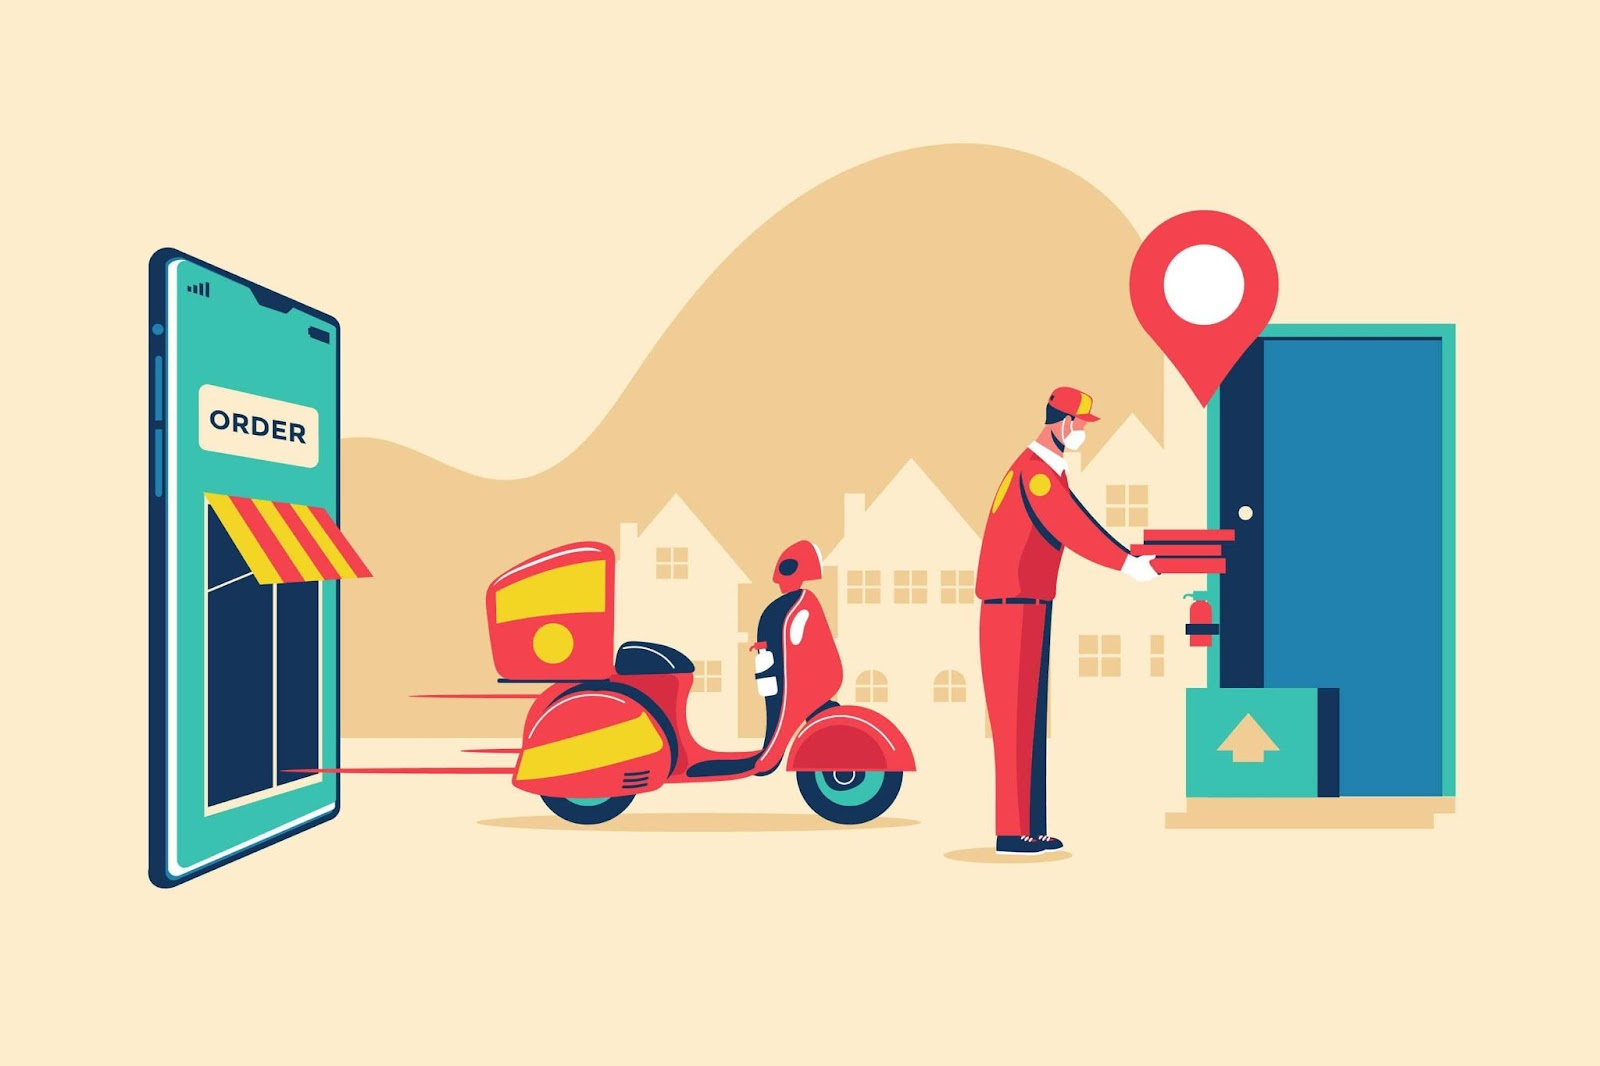 food ordering business